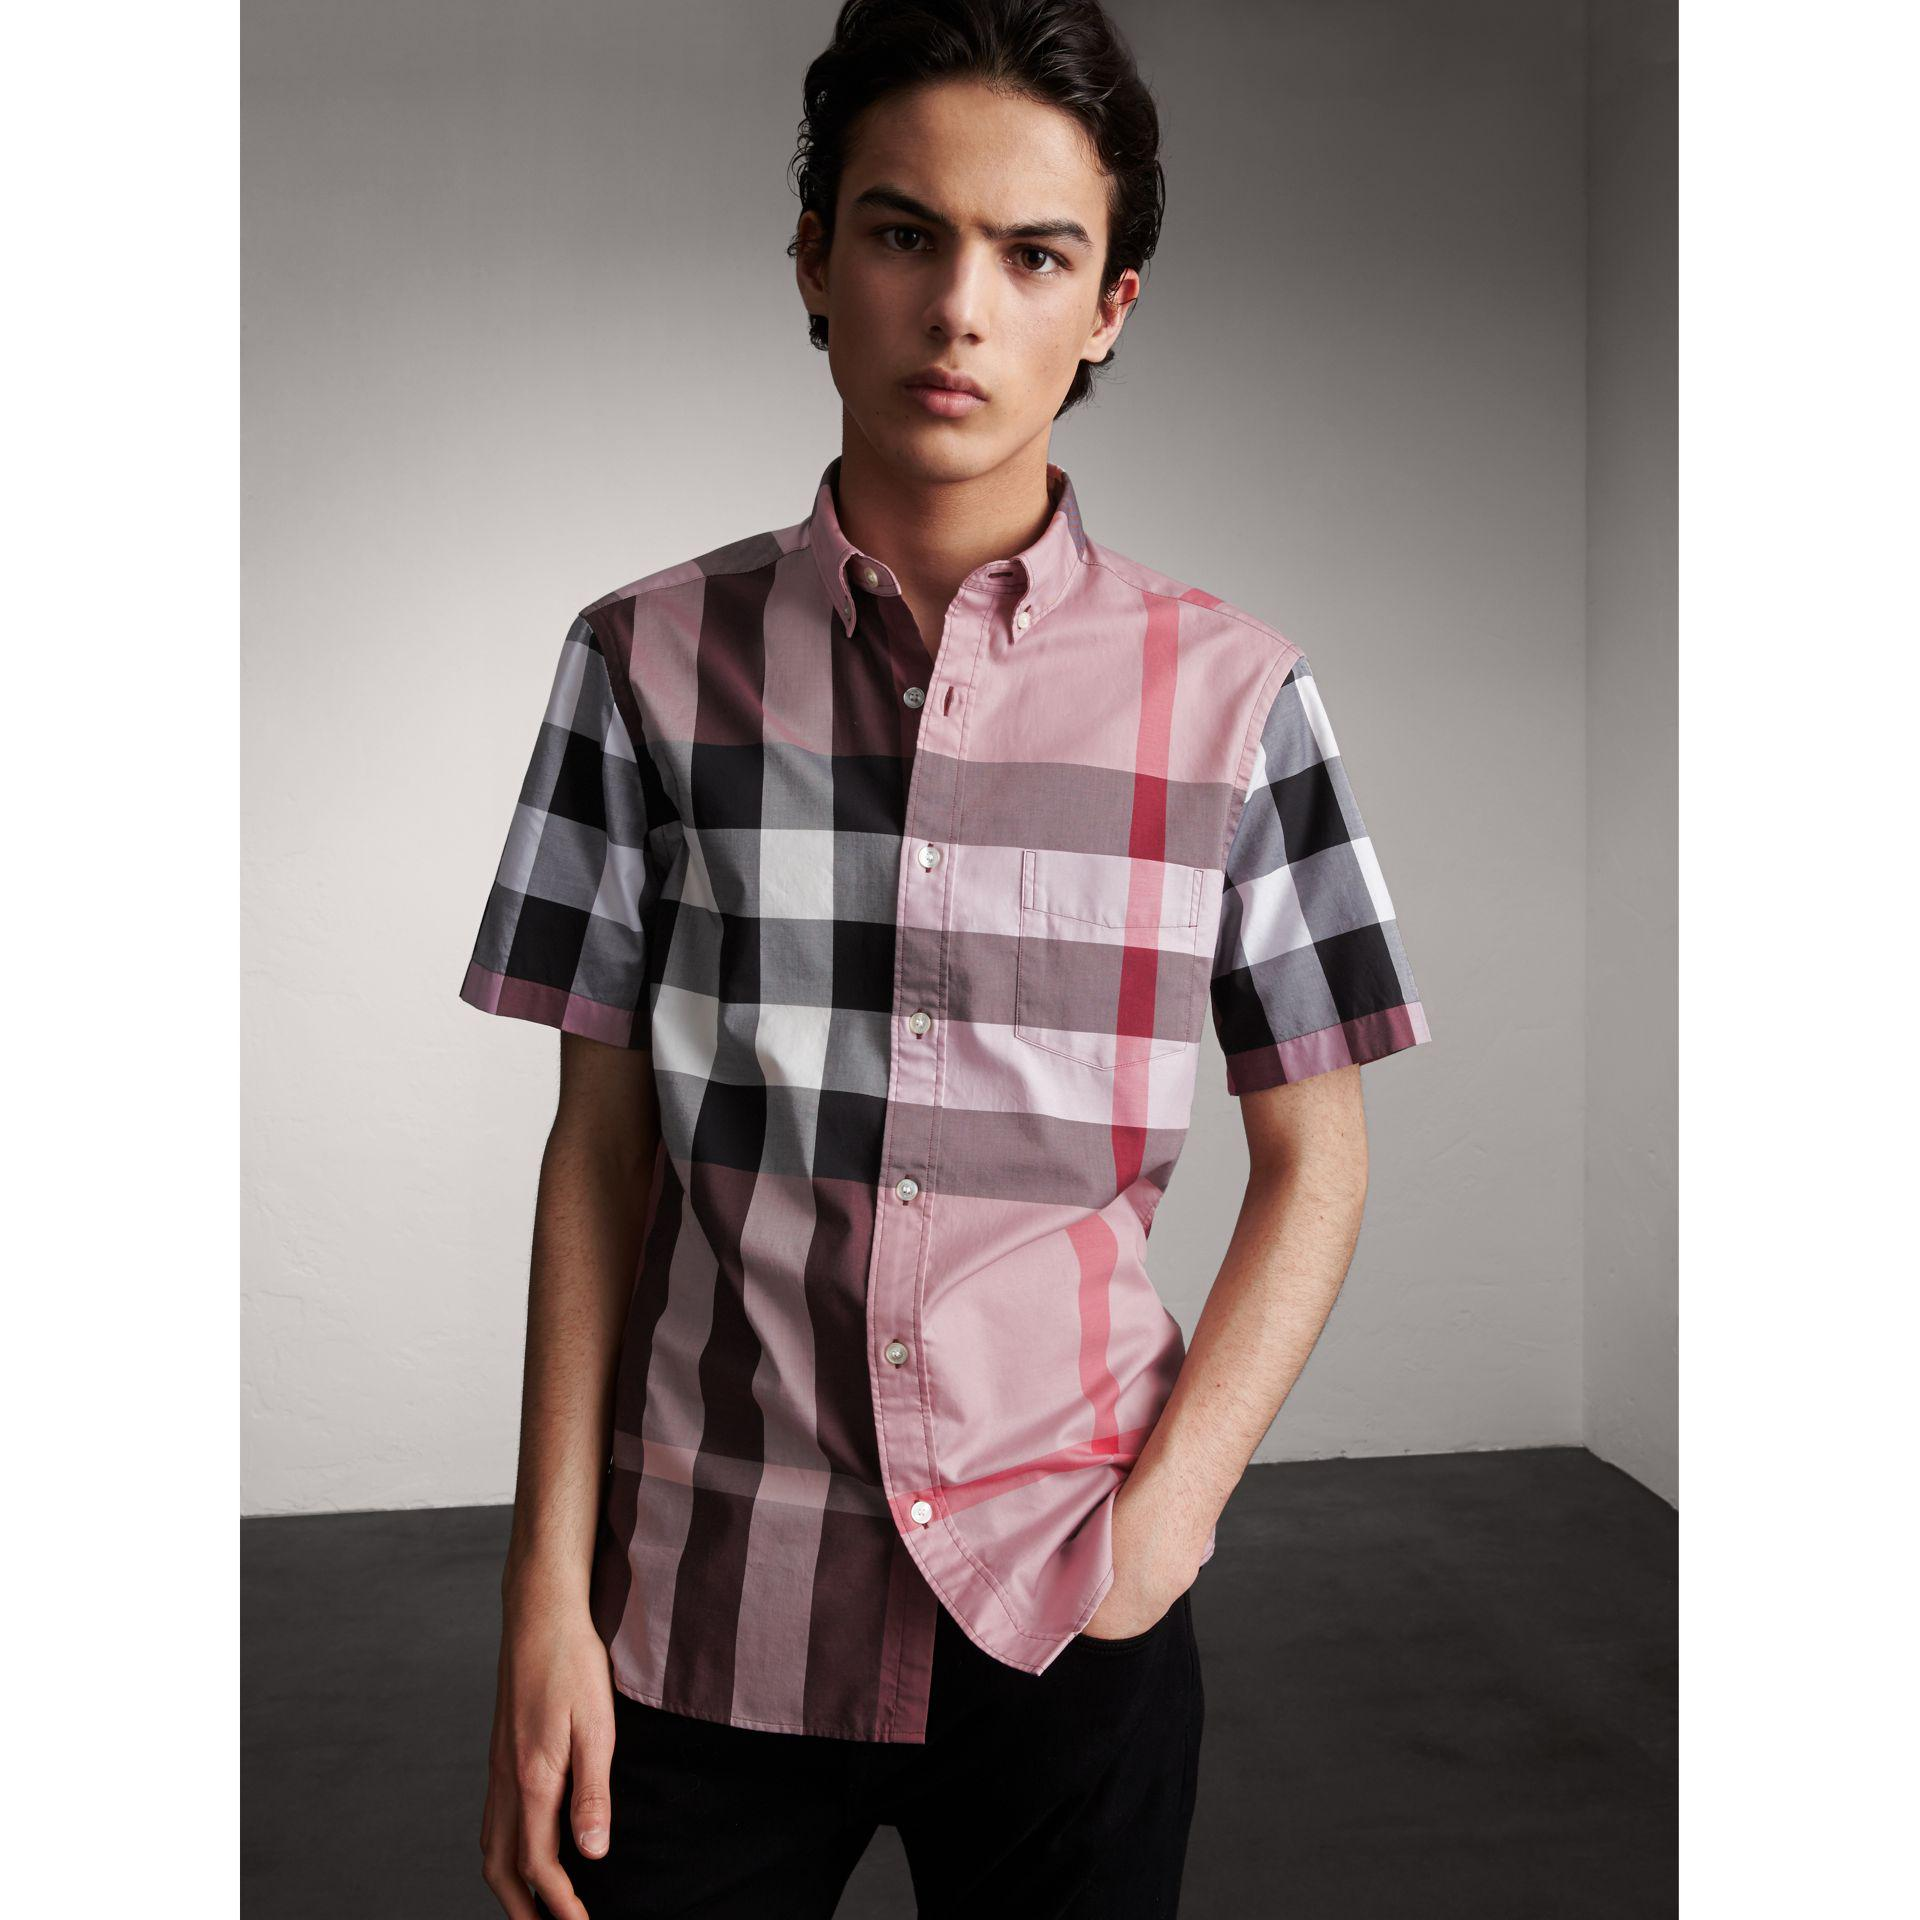 New Styles Cheap Online Burberry Check Cotton Short-sleeved Shirt Store Sale Visit New Sale Online bHZKDQ3